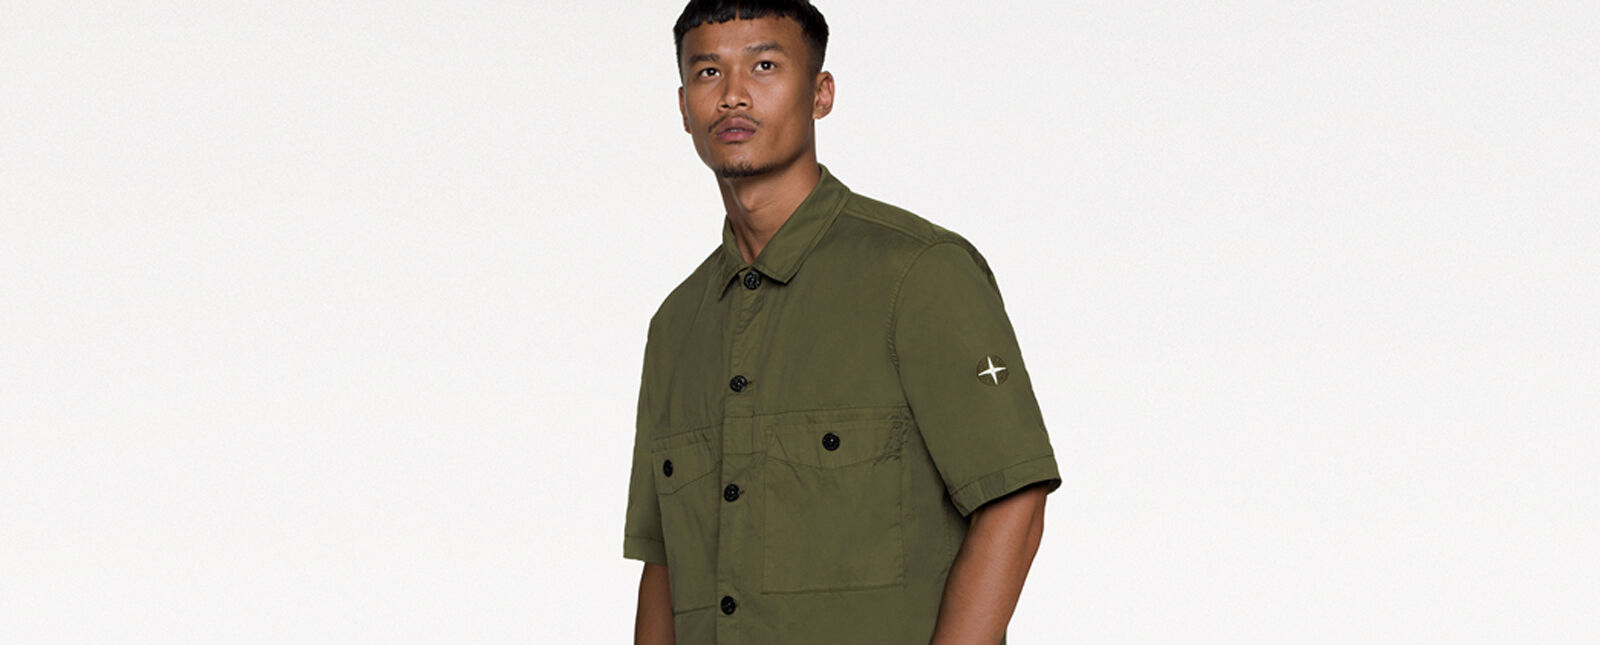 Model wearing a military green short sleeved shirt with button fastening, two patch pockets with snap fastening on the chest and the two tone Stone Island Compass logo embroidery on the left sleeve.